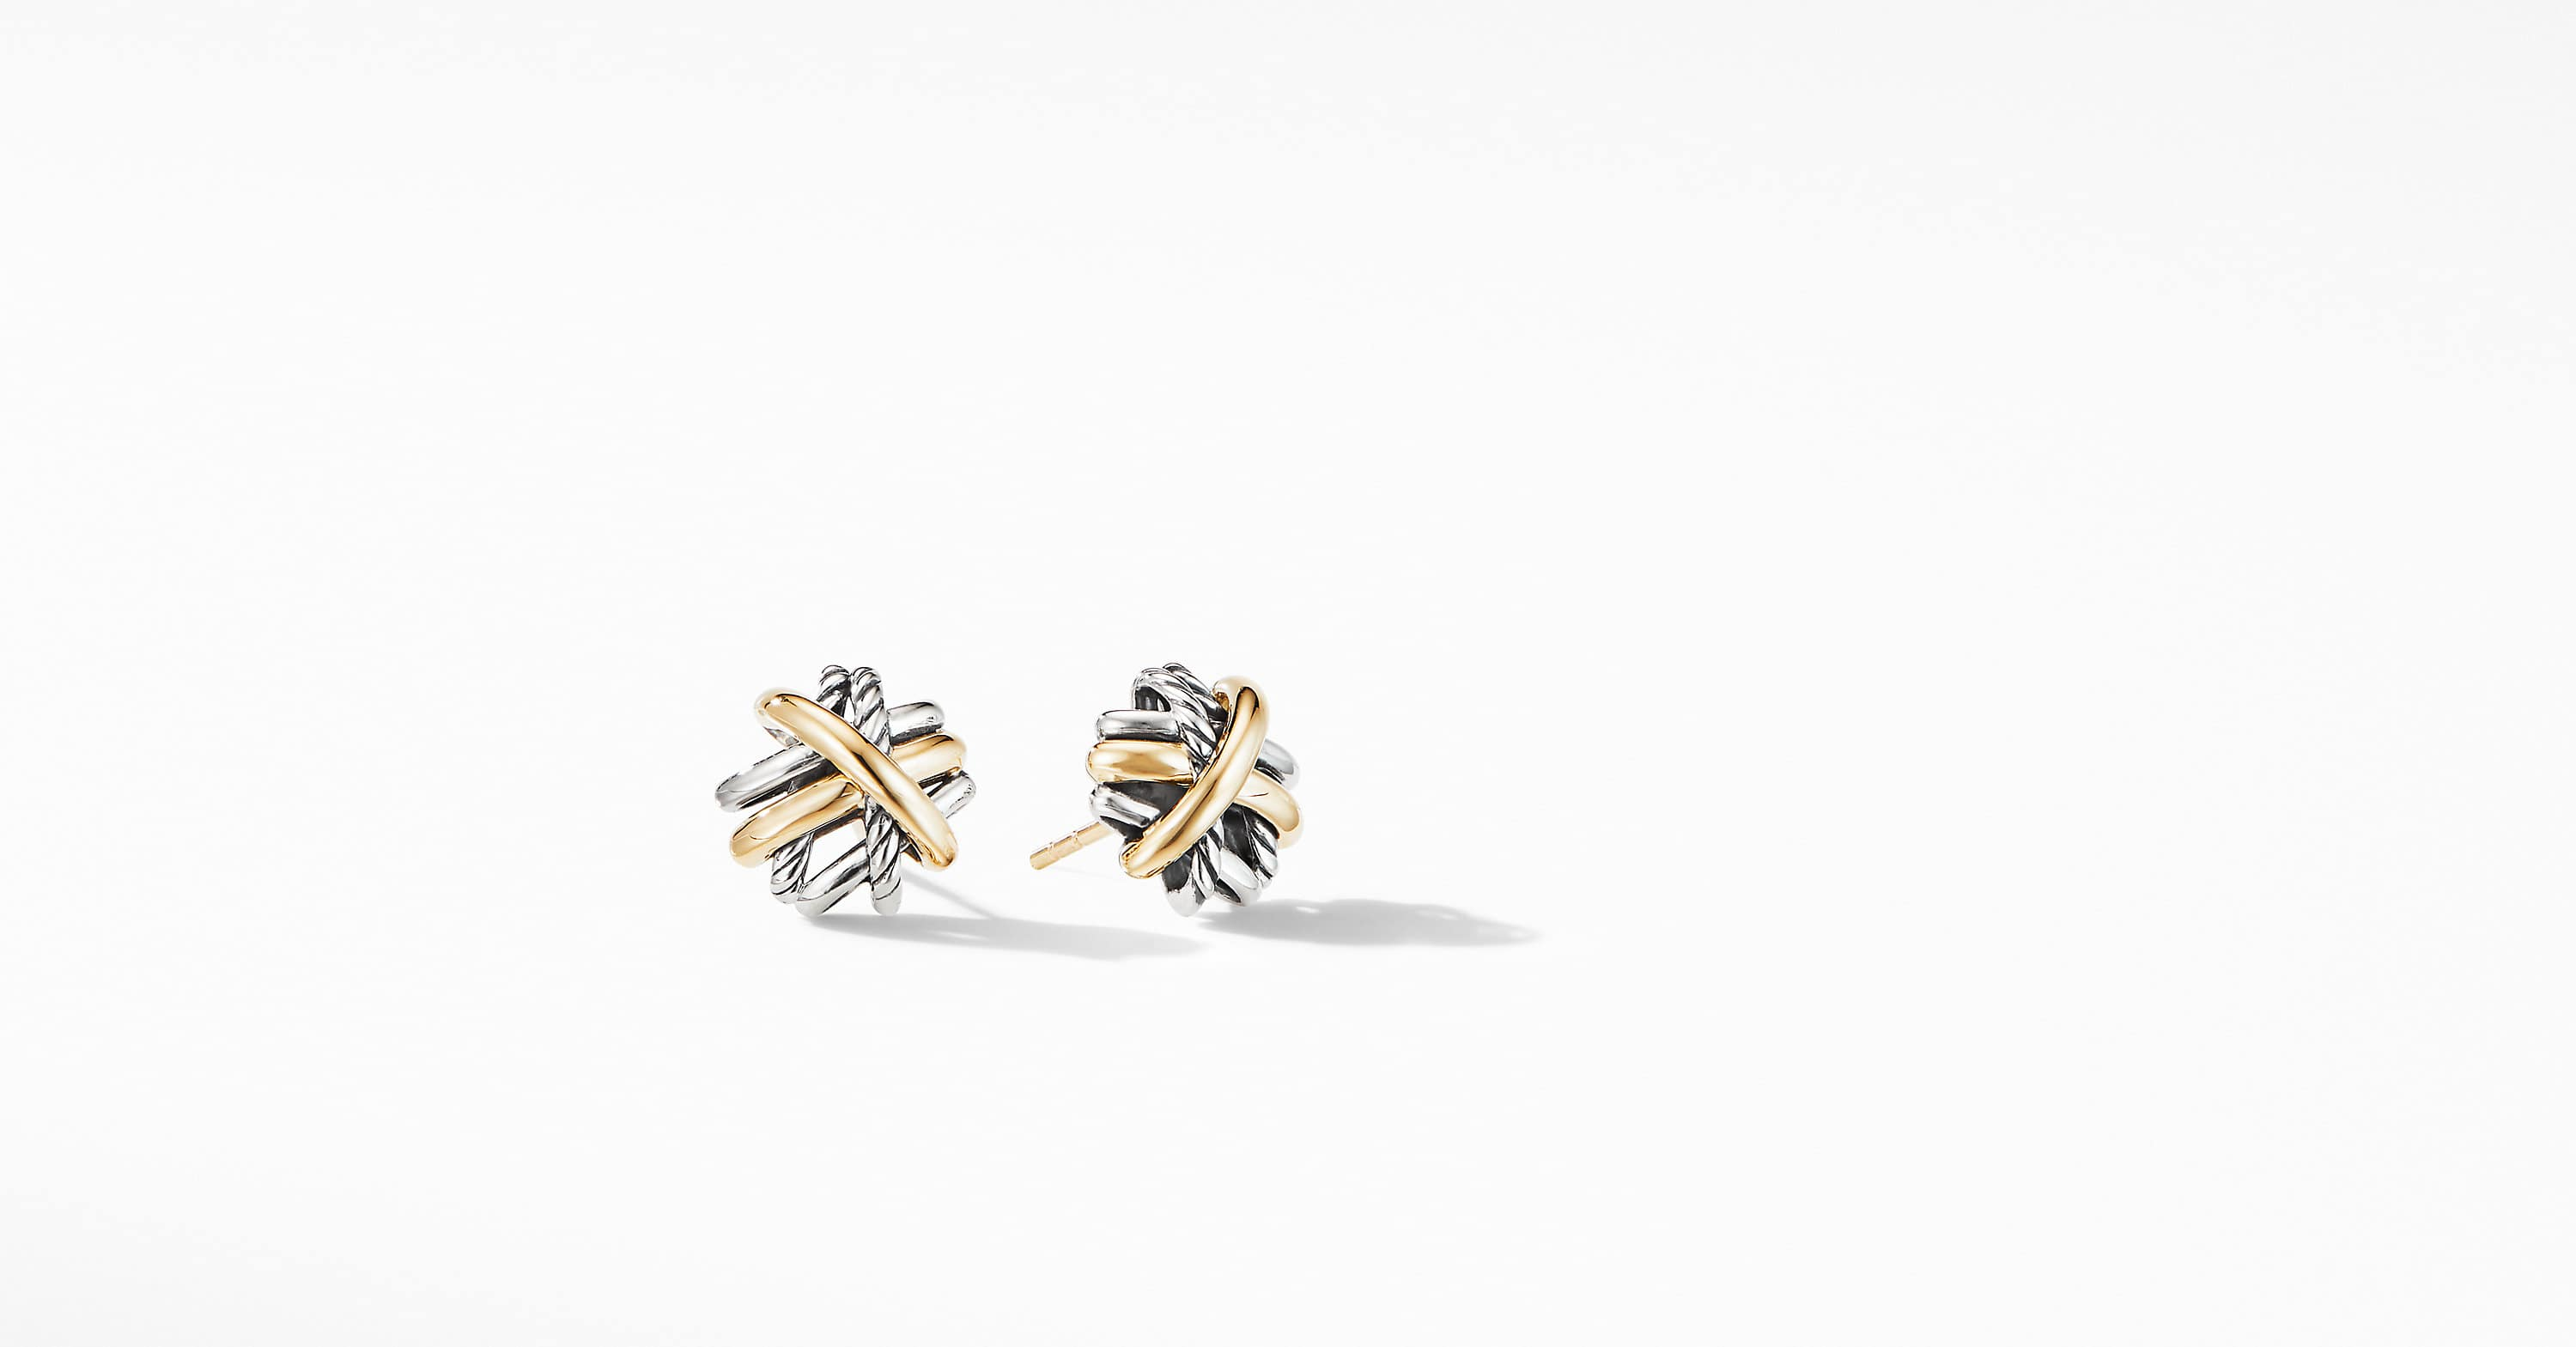 The Crossover Collection Stud Earrings with 18K Yellow Gold